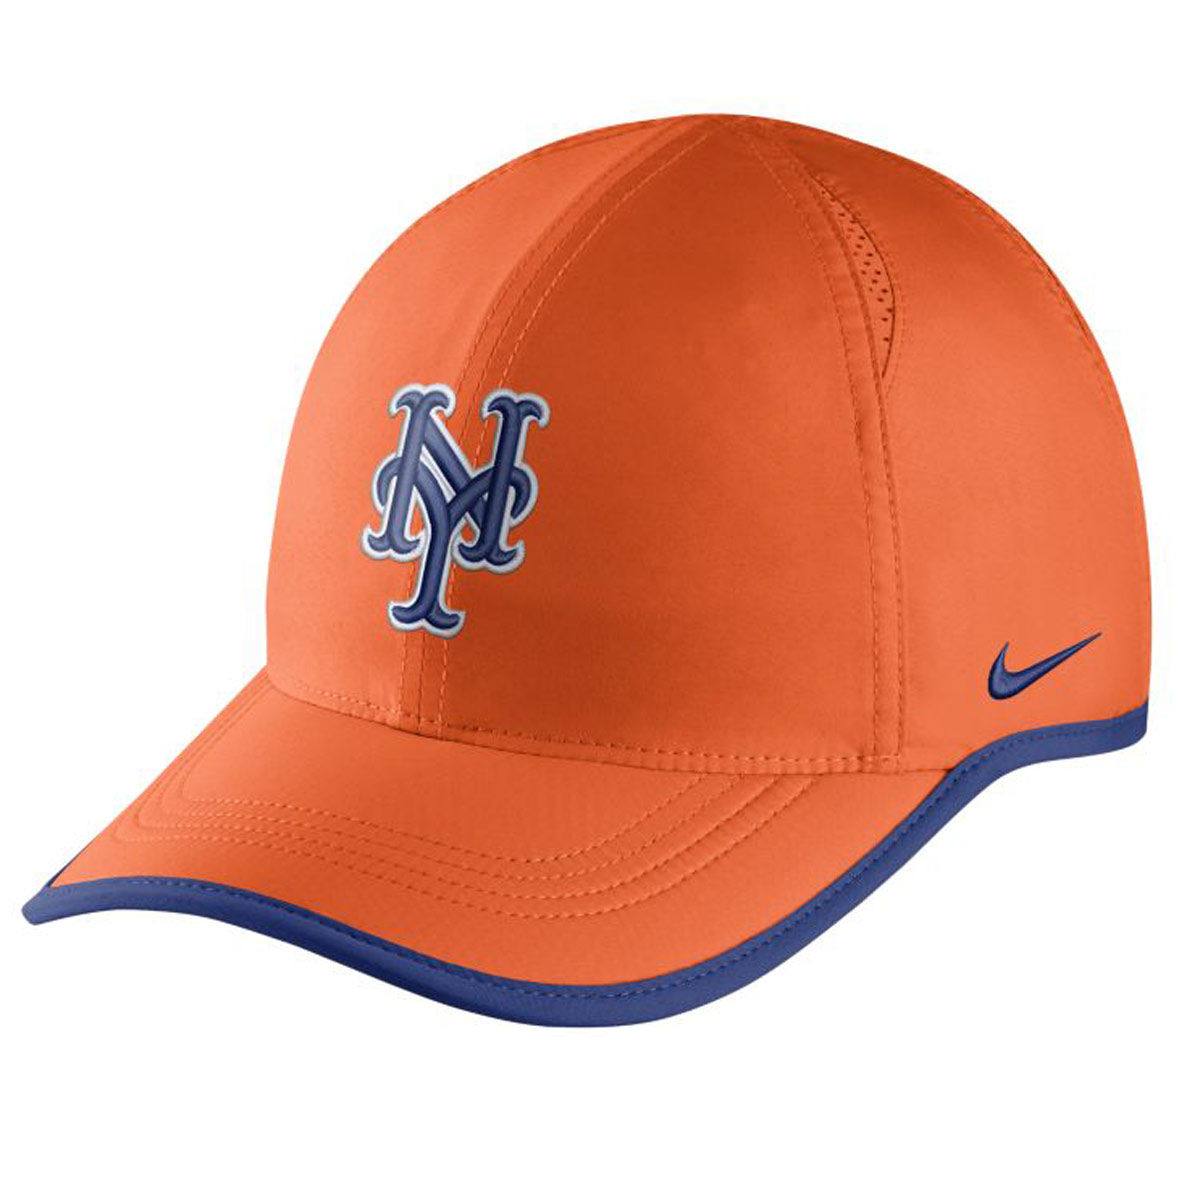 New York Mets Adult Featherlight Hat